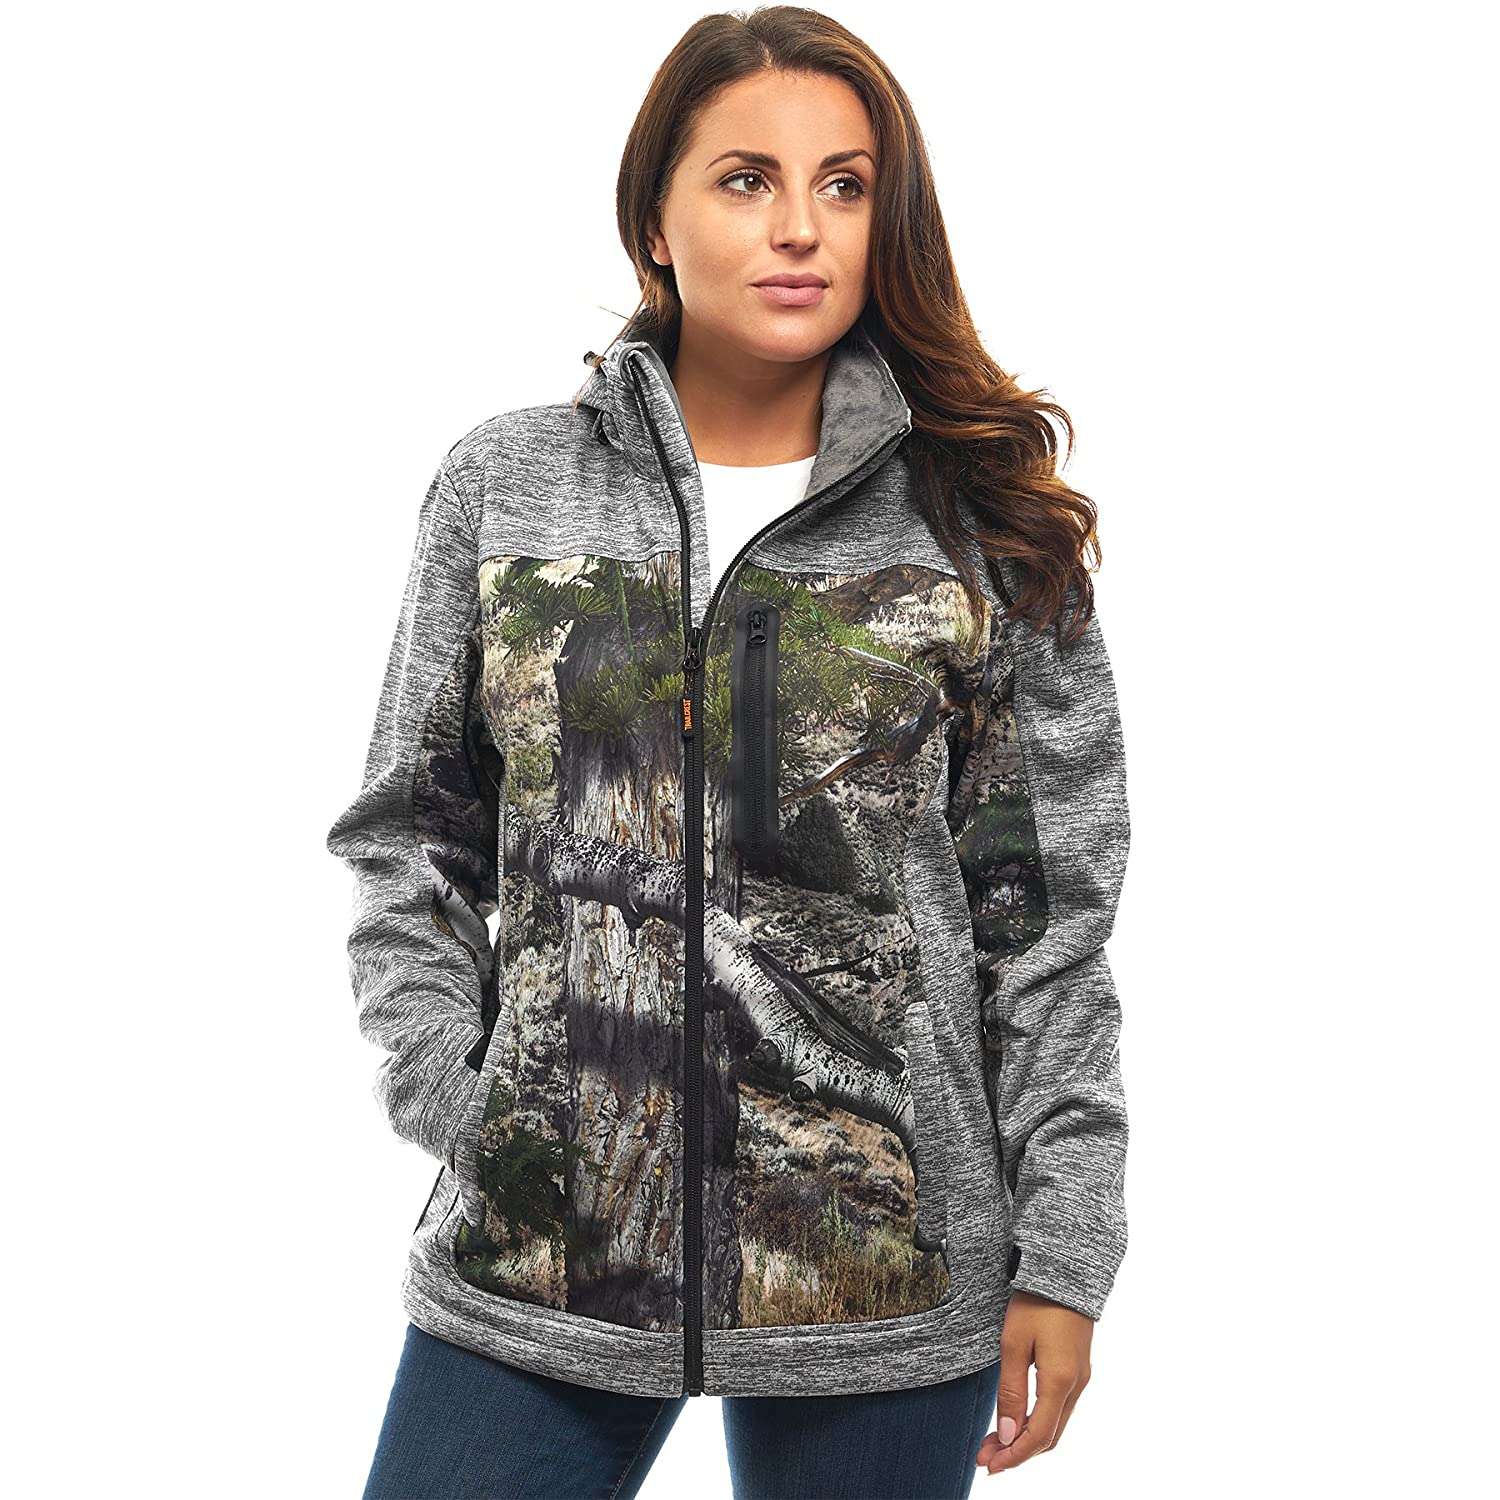 TrailCrest OUTERWEAR レディース B07497TPT5 XL|Grey Heather Mountain CountryTM Grey Heather Mountain CountryTM XL